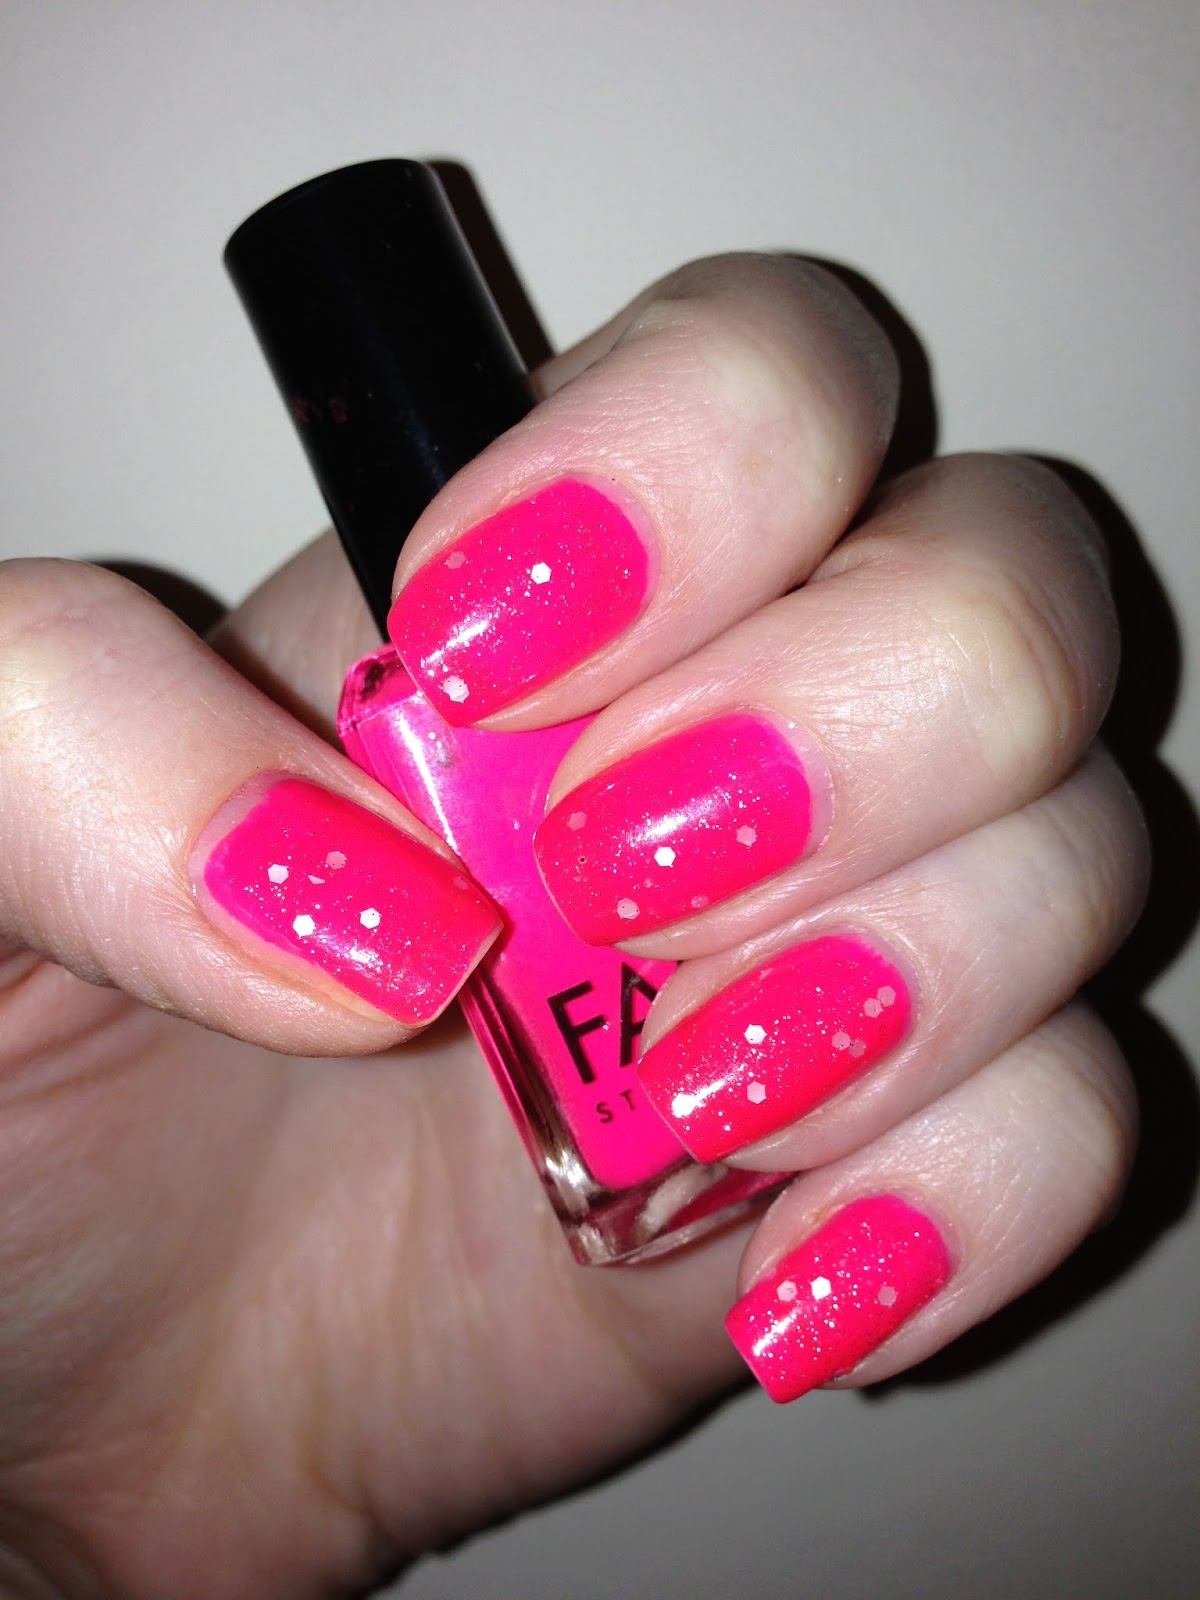 NailsByNumbers: NOTD! Loud and Subtle - Neon Pink with OPI's